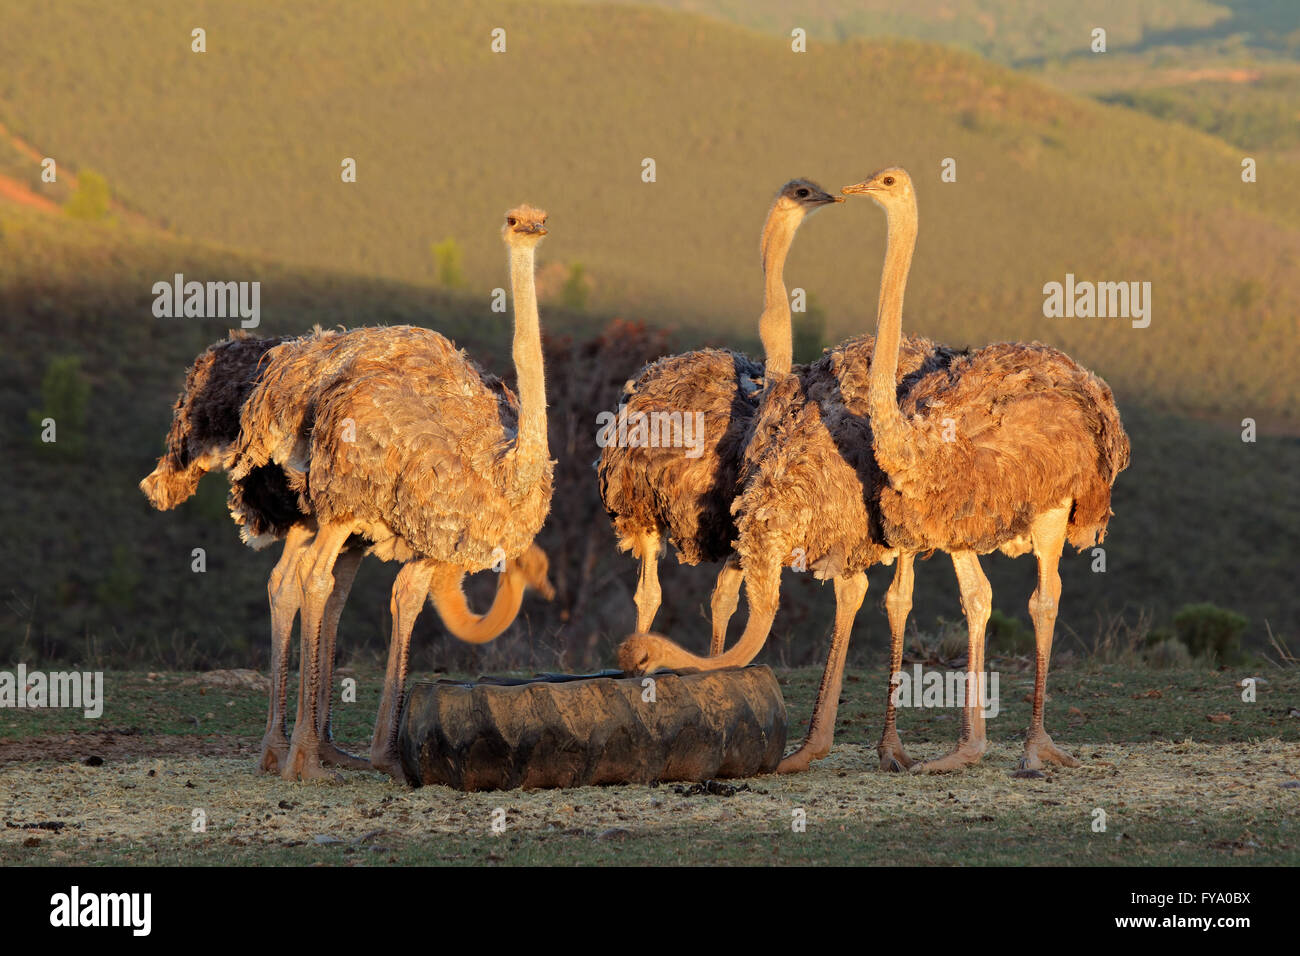 Ostriches on an ostrich farm, Karoo region, Western Cape, South Africa - Stock Image